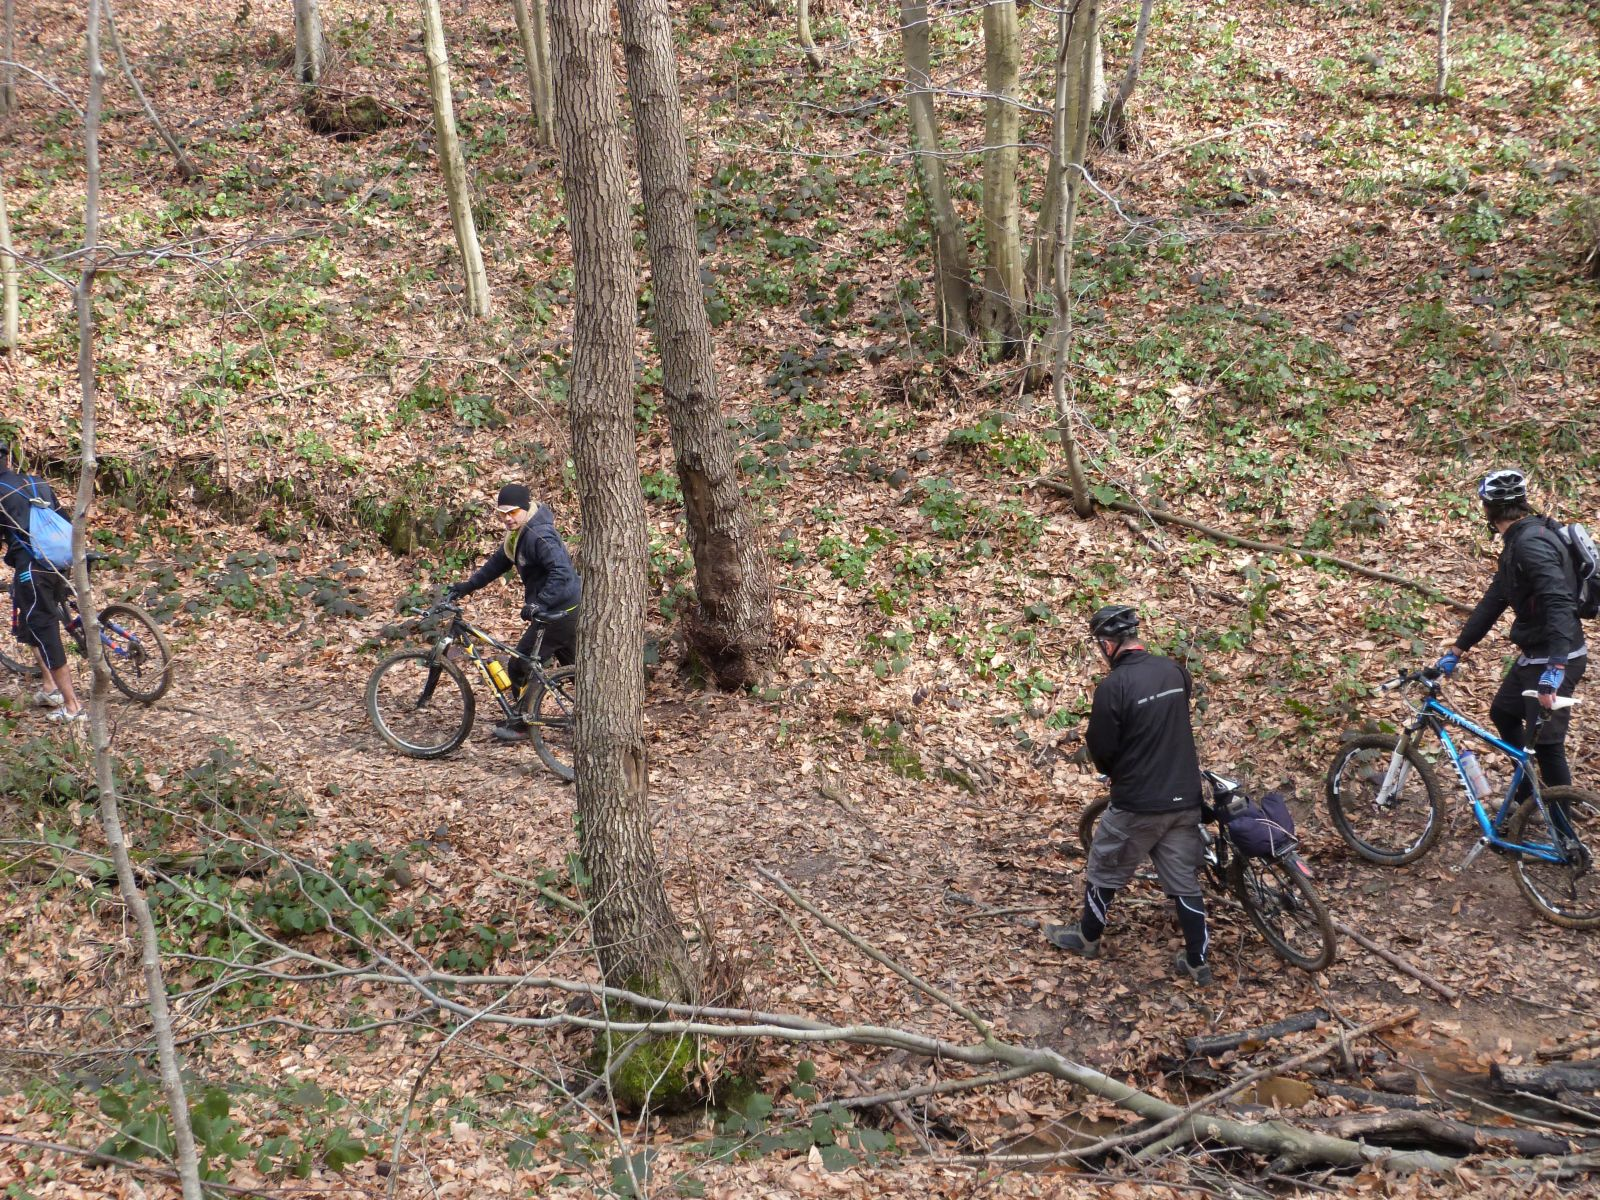 Carrying bikes in Belgrade Forest